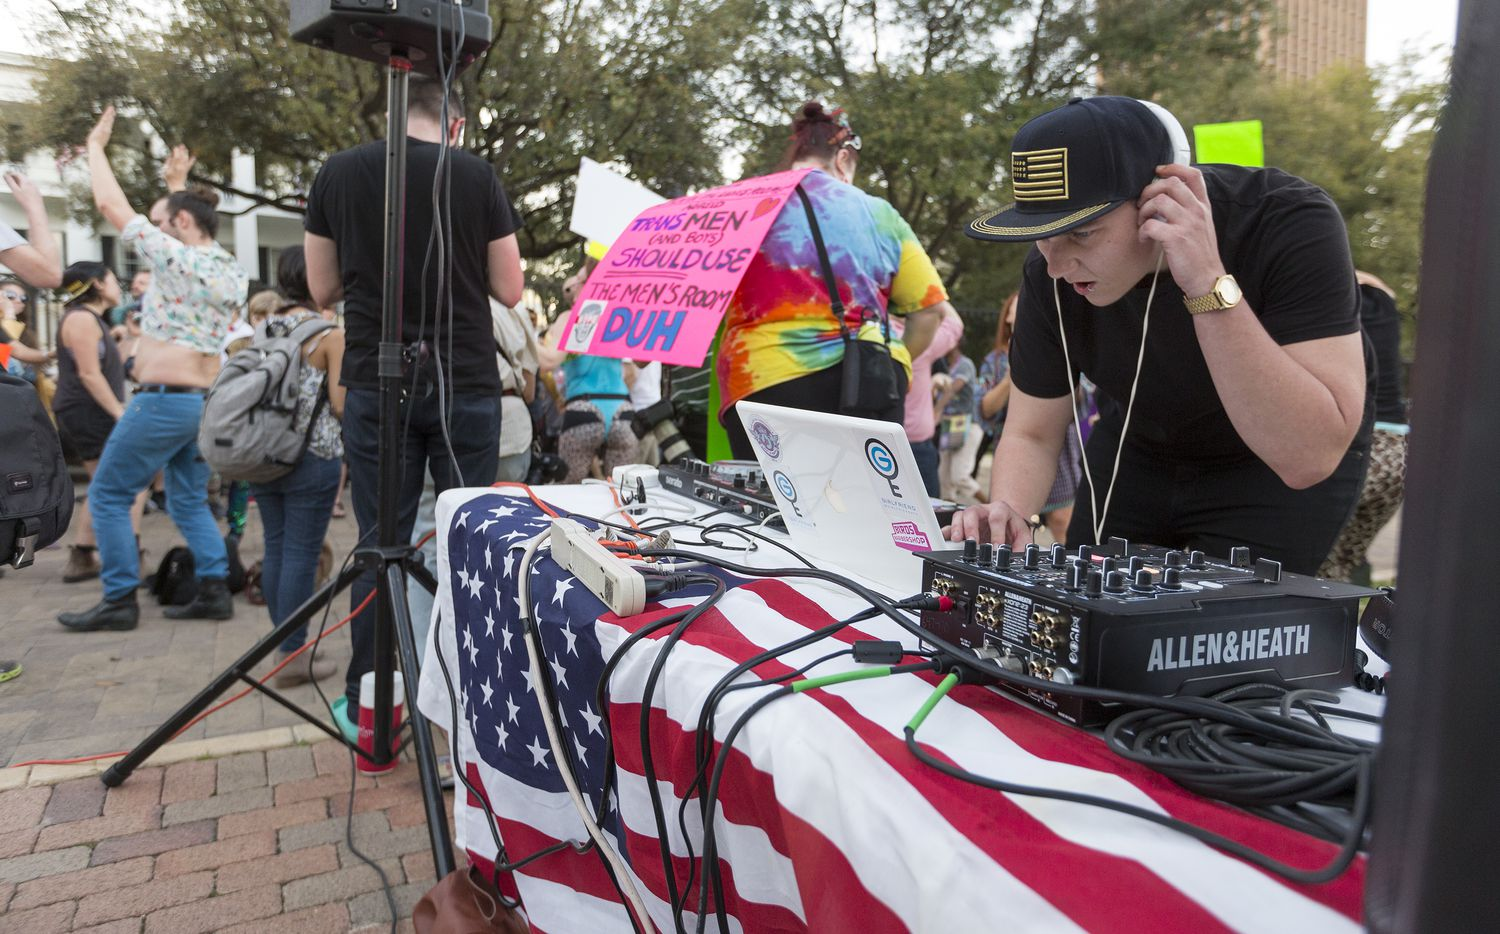 Ezra Edwards, DJ Girlfriend, plays music during a dance party supporting the LGBTQ community gathered in front of the Governor's Mansion in Austin on Thursday, Feb. 23, 2017.